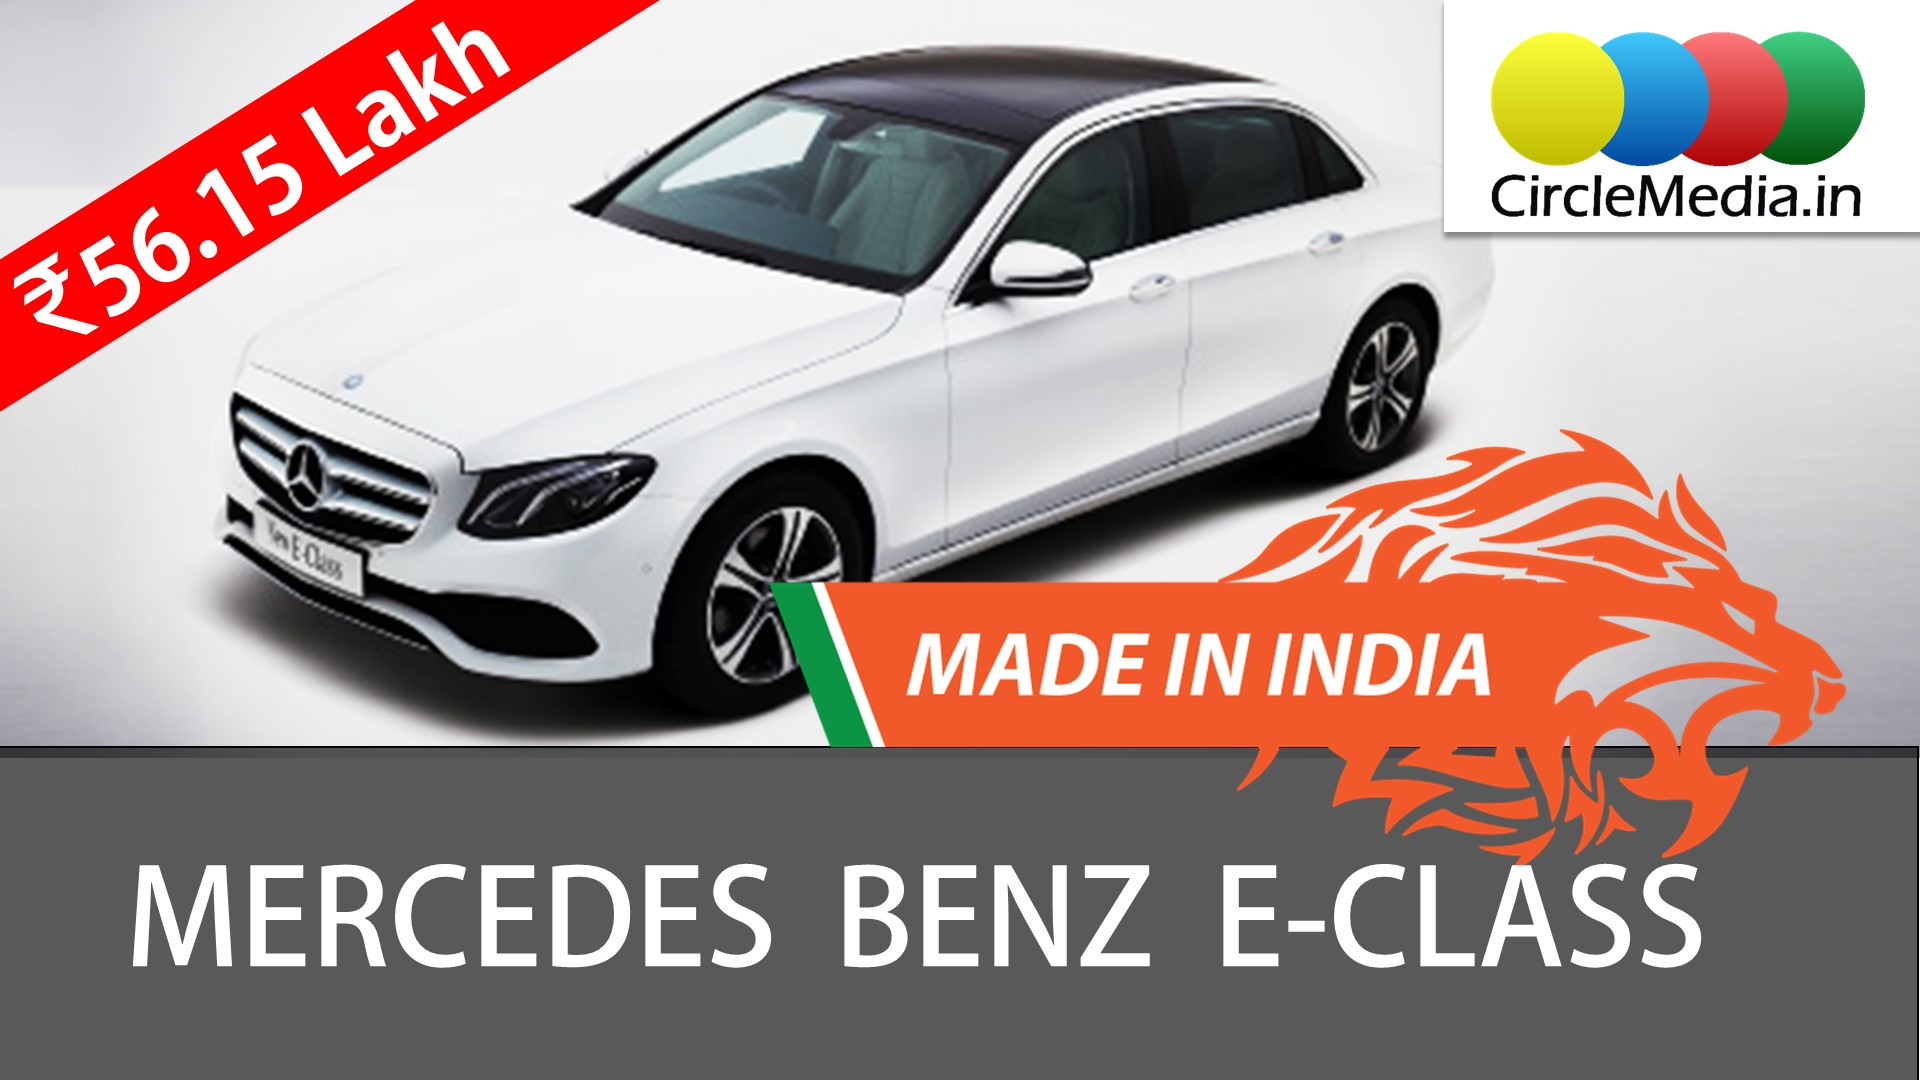 NEW Mercedes E-Class 2017 | Made In India | Price and Features of  Mercedes E-Class | CircleMedia.in